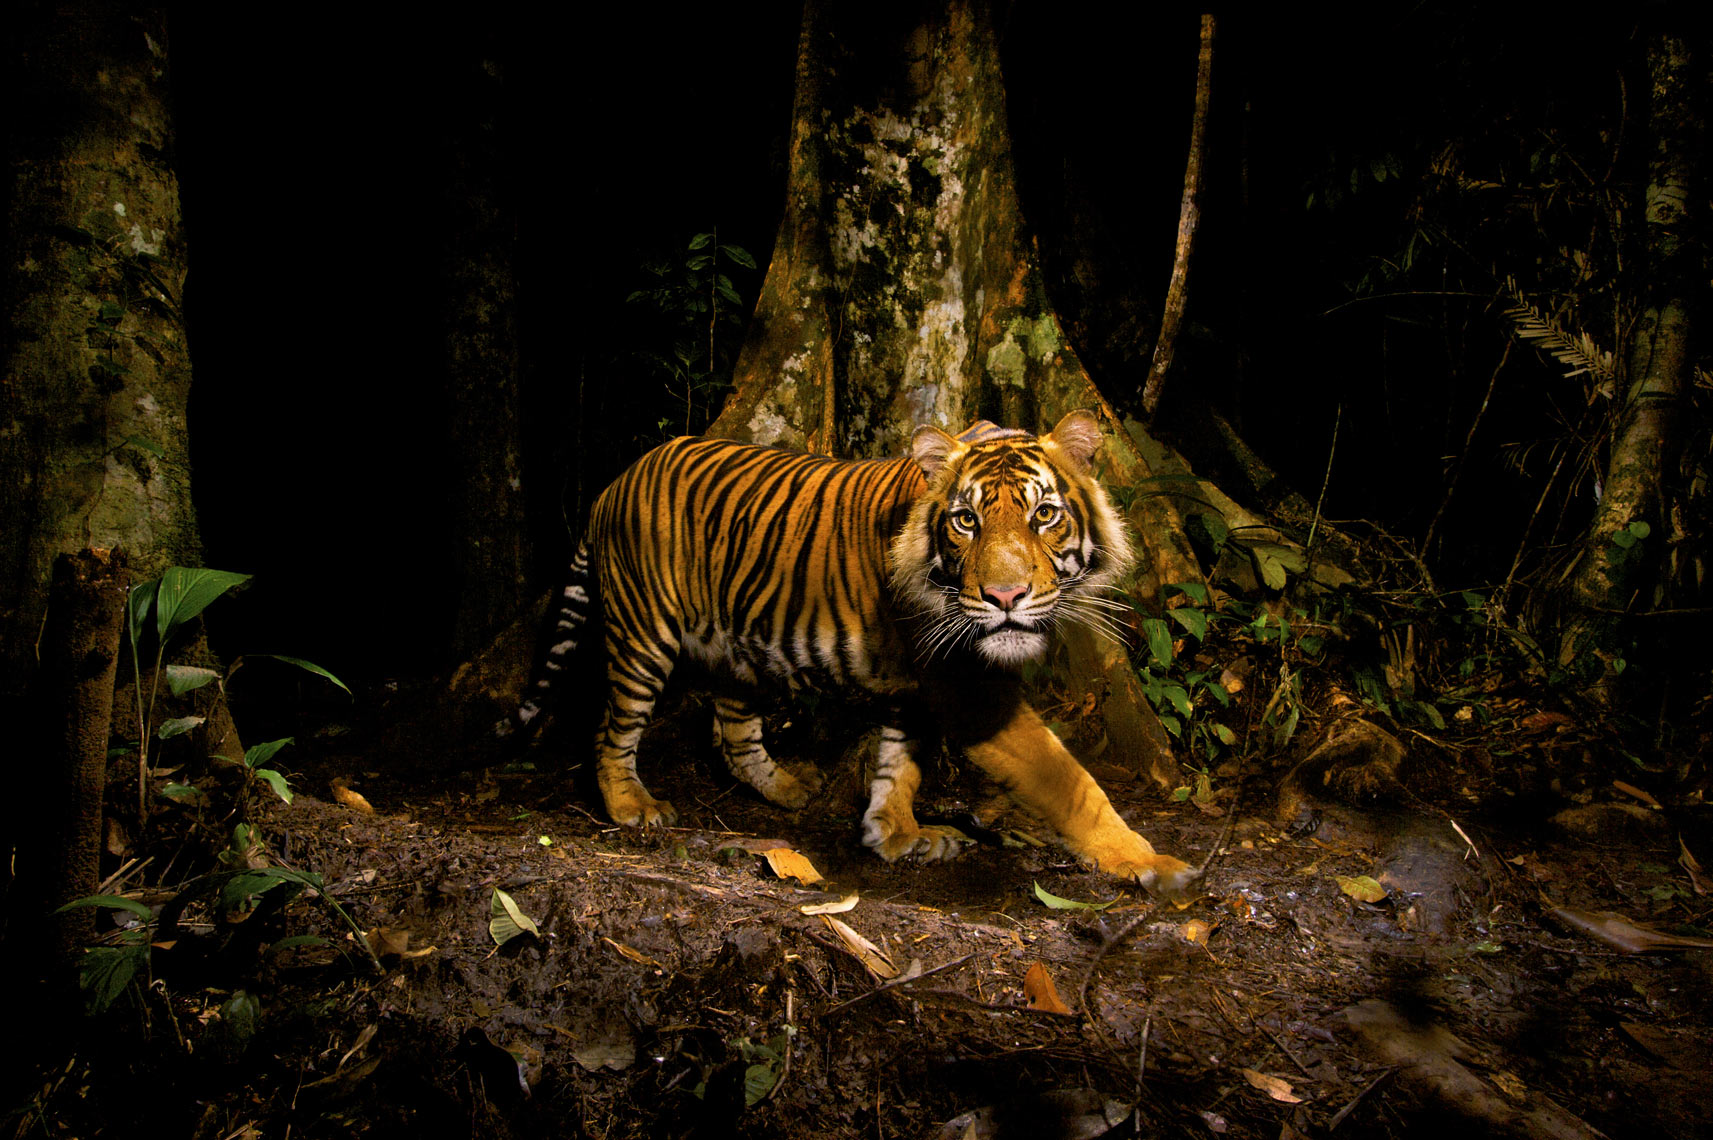 Sumatran Tiger, Steve Winter Photography, tiger, wildlife